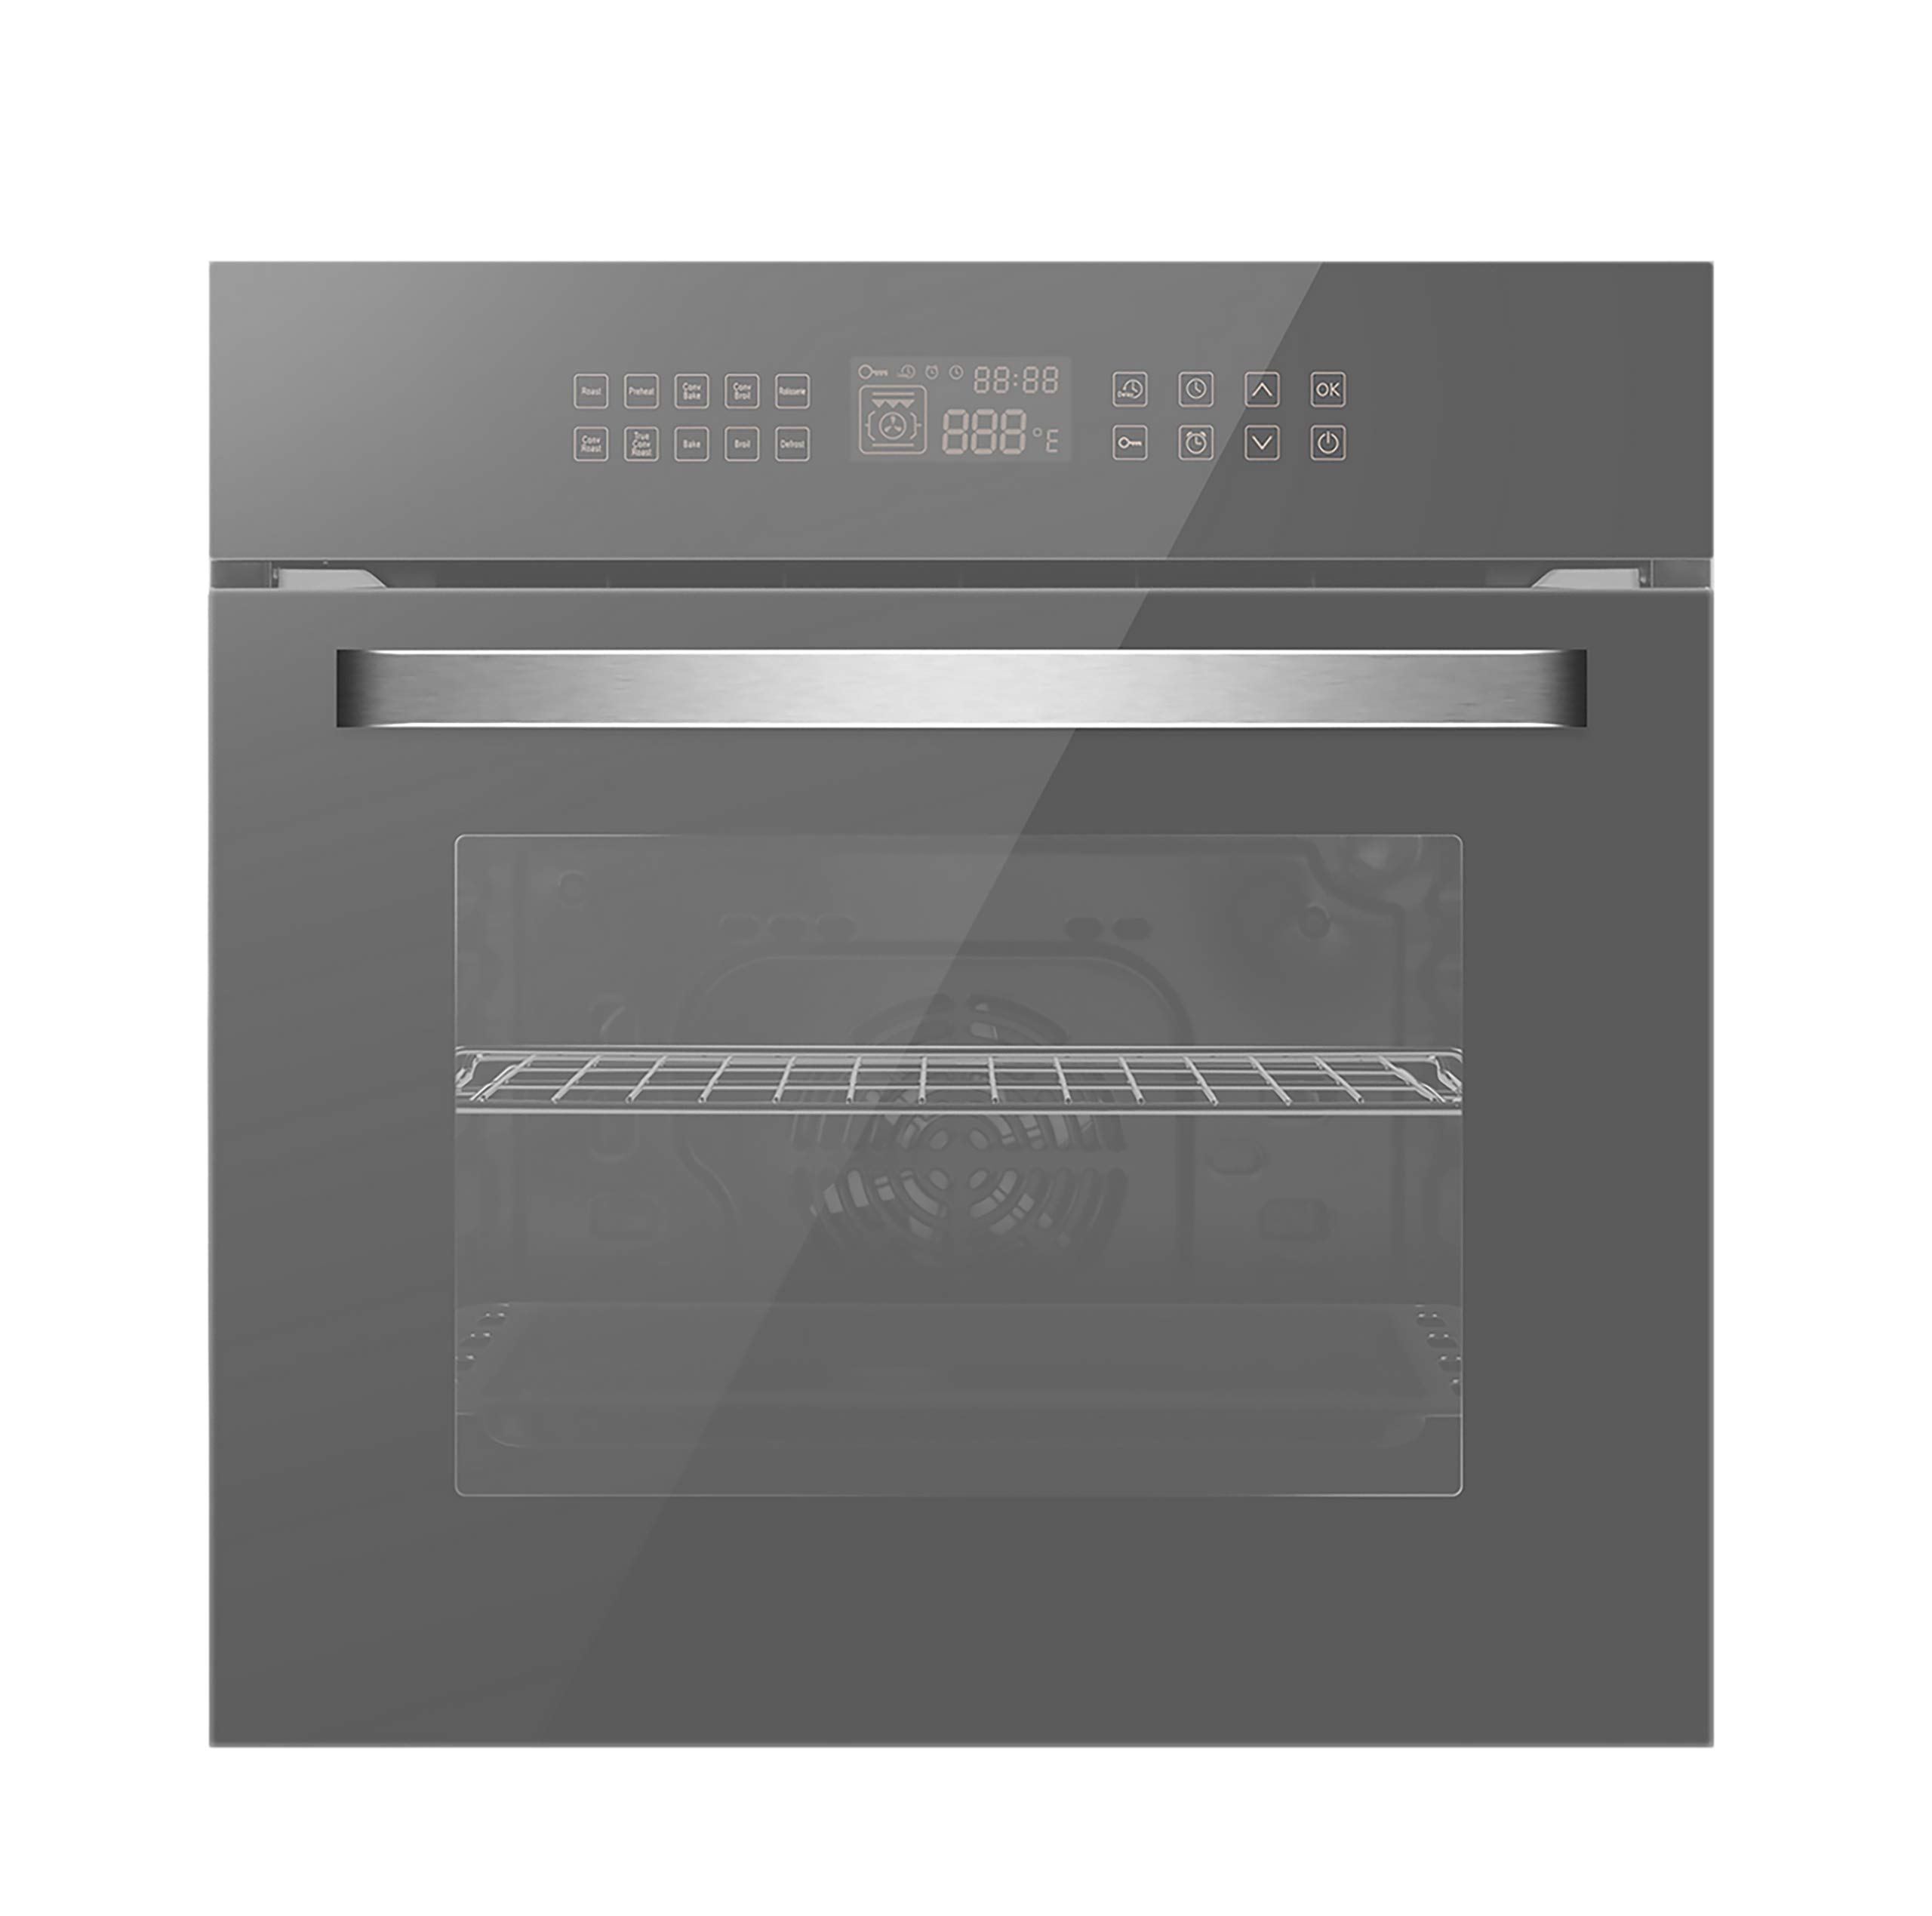 Empava KQB65C-17-220V Electric Convection Single Wall Oven 10 Cooking Functions Deluxe 360° ROTISSERIE with Sensitive Touch Control in Silver Mirror Glass 24 Inch, WOB17 by Empava